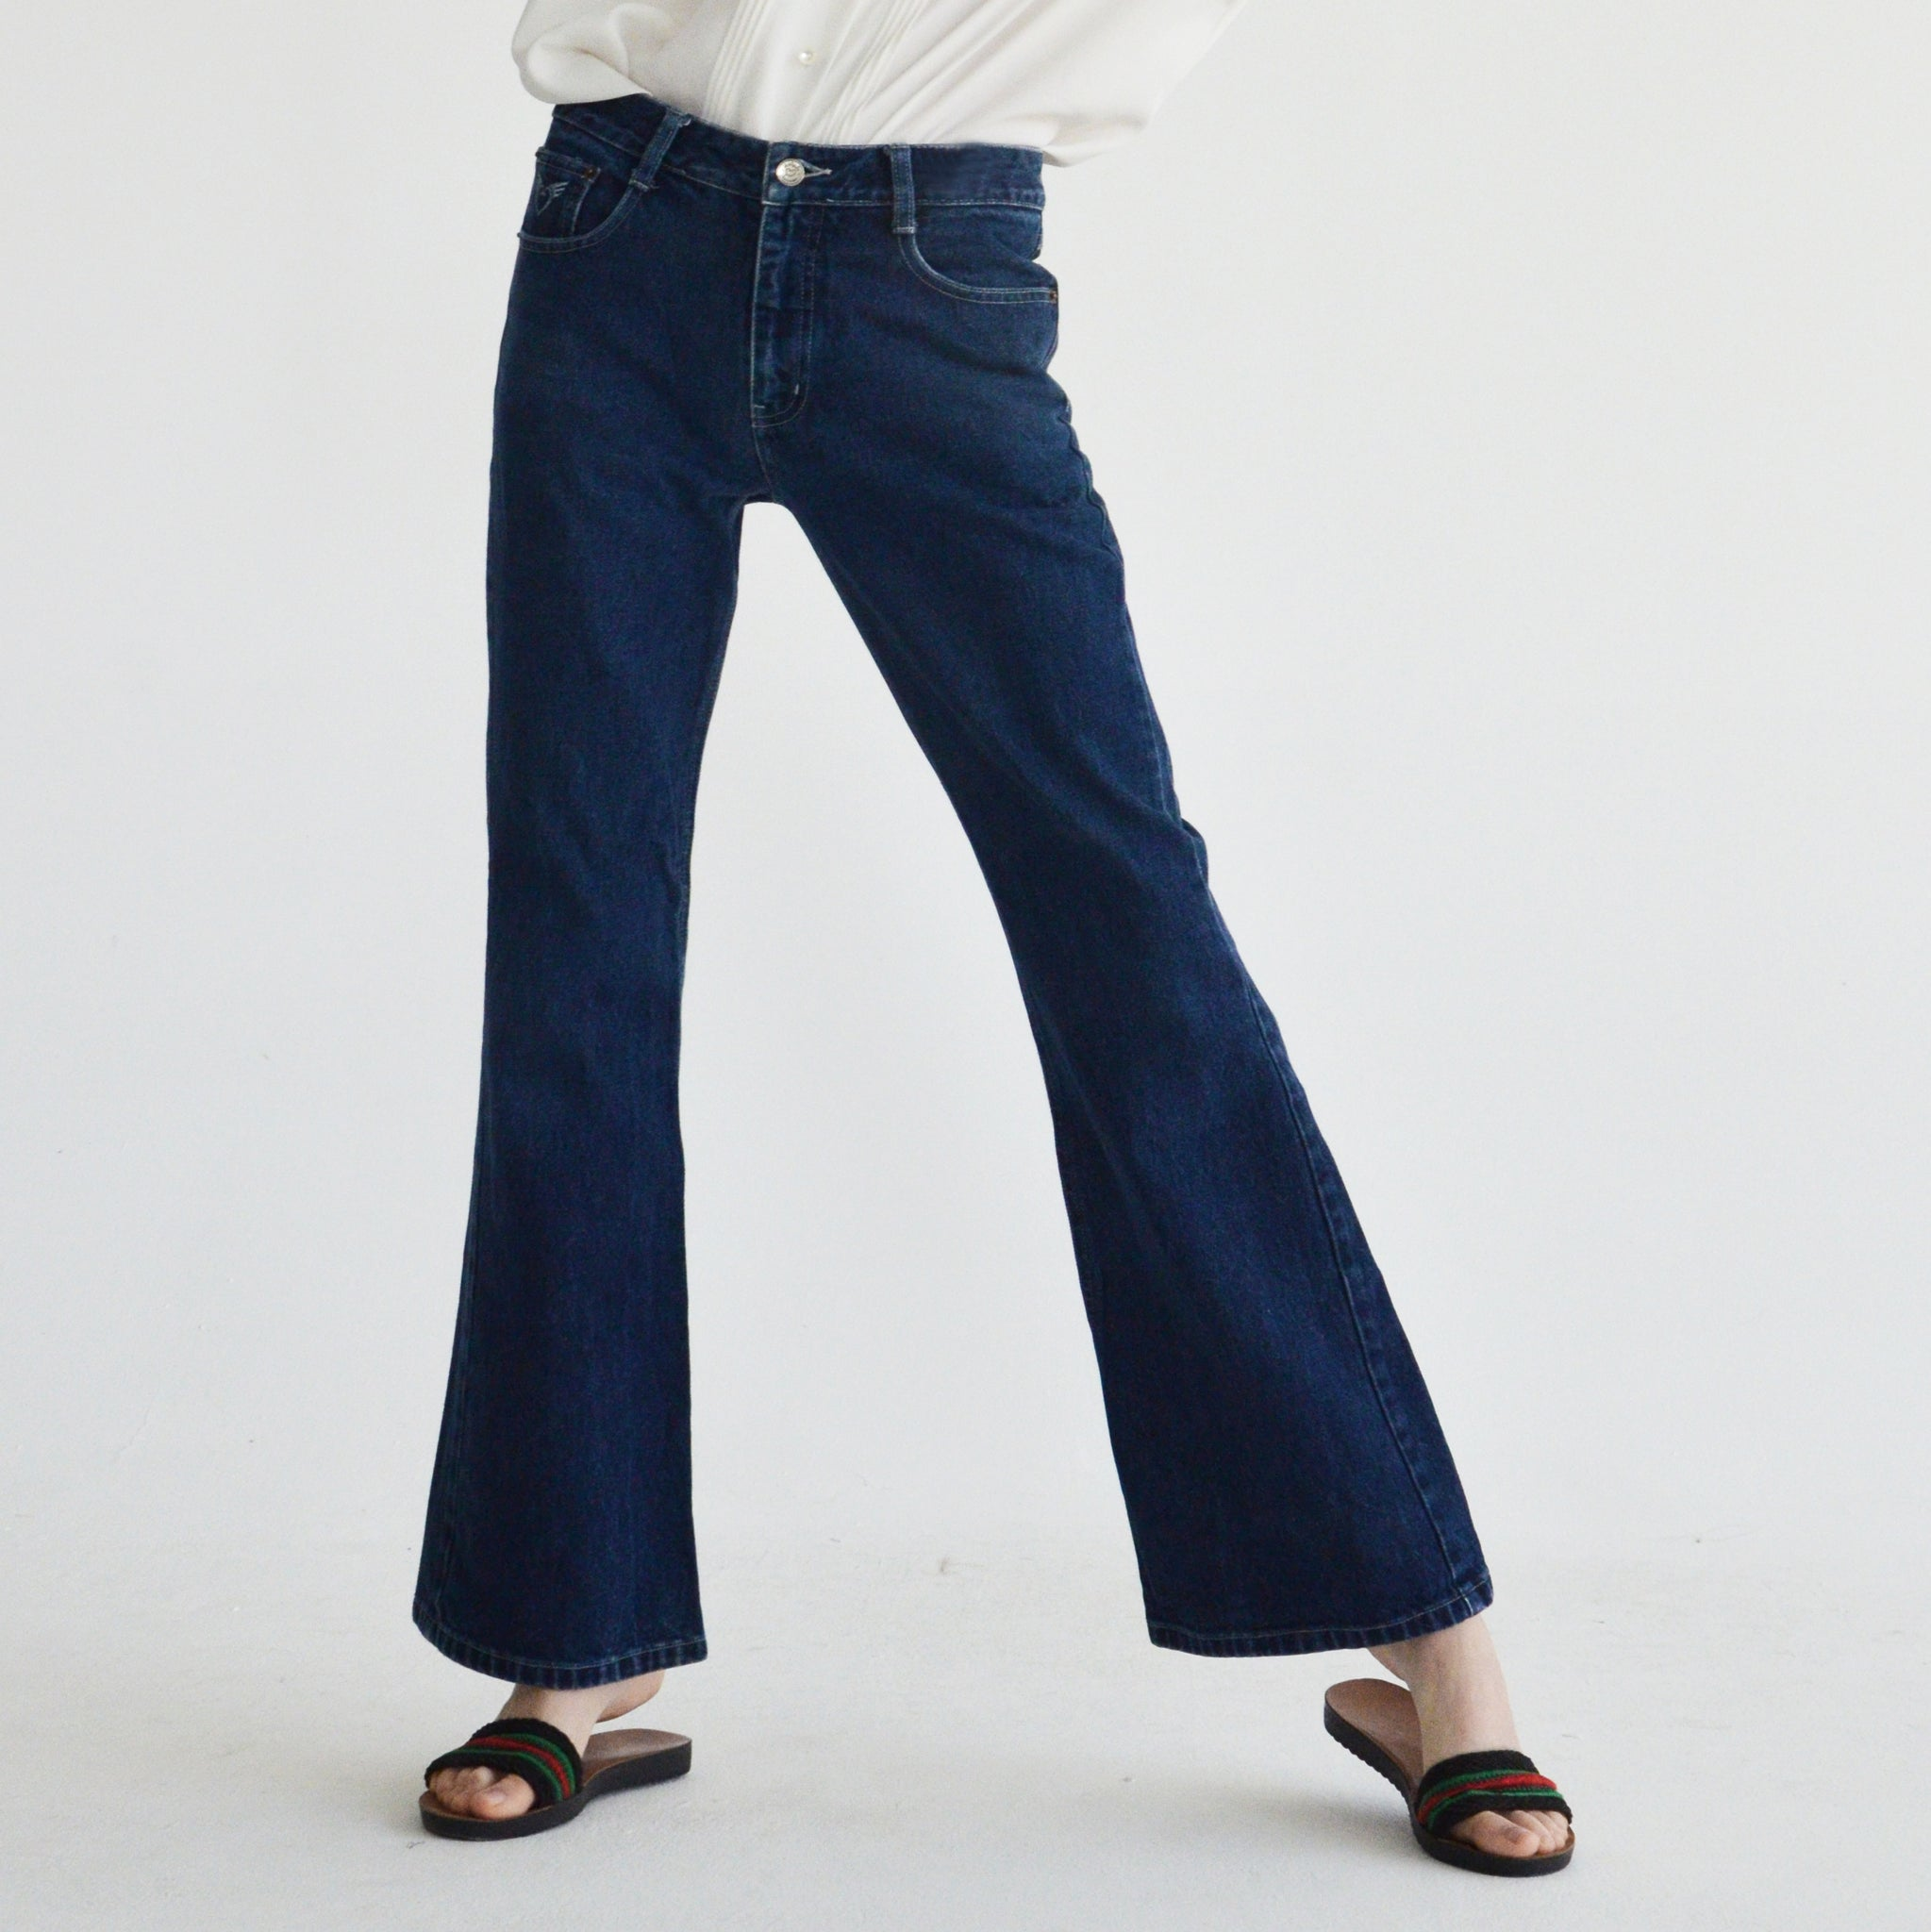 Vintage High Rise Jeans